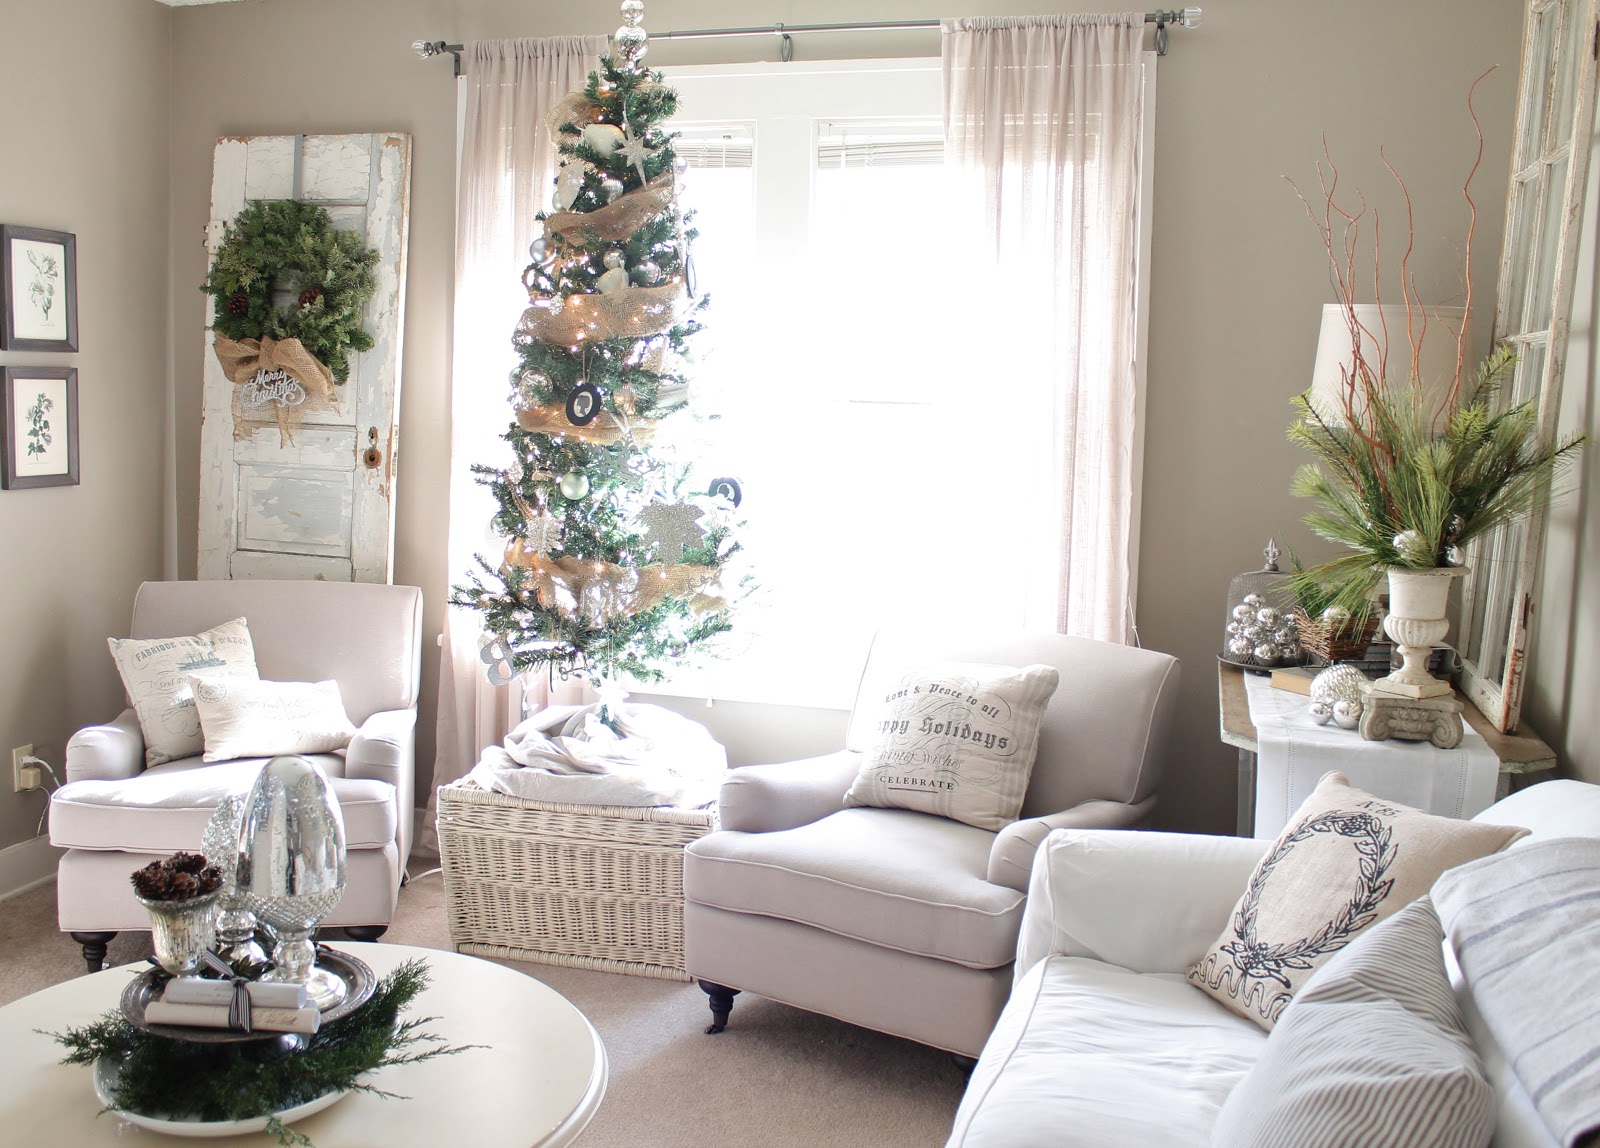 12th And White Our Christmas Living Room Part 2